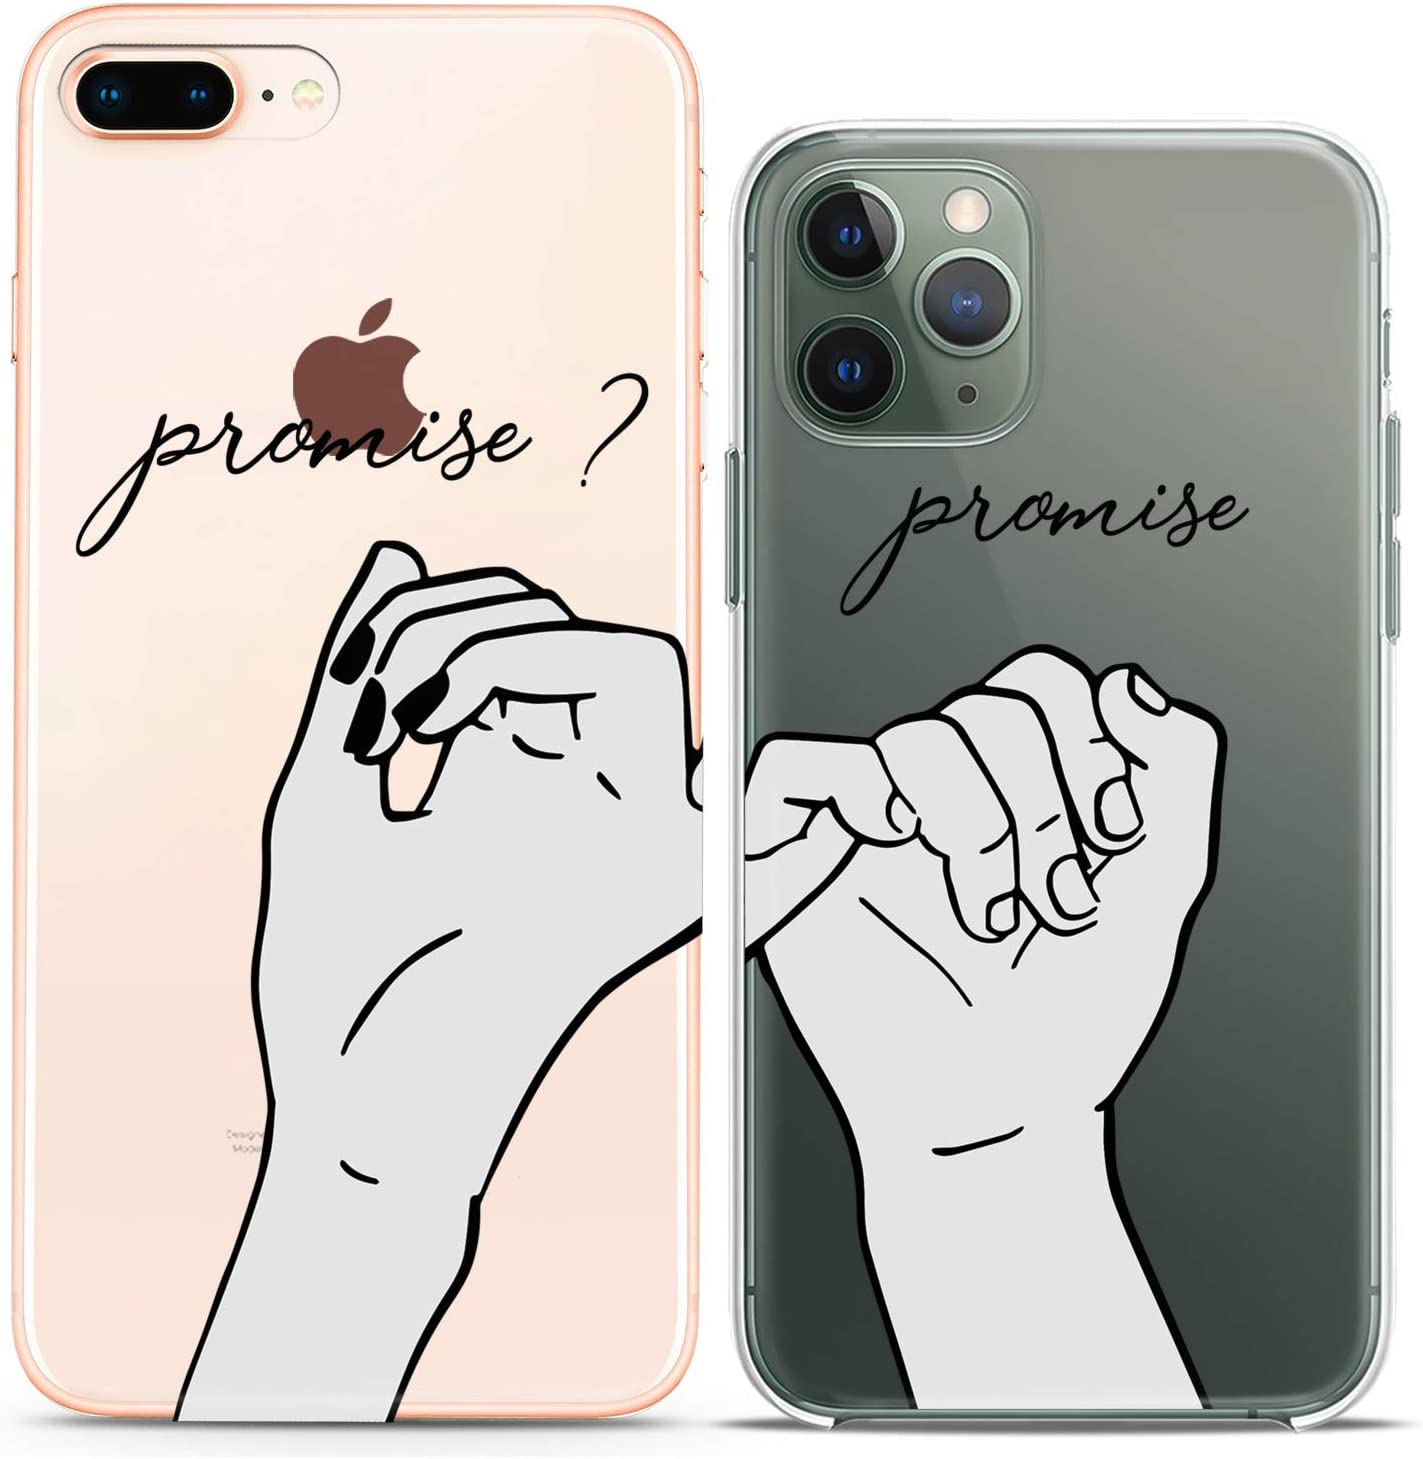 Cavka TPU Couple Cases for Apple iPhone 11 Pro Xs Max X Xr 8 Plus 7 6s SE 5s Promise Hands Clear See Through Pinky Swear Print Matching Girlfriend Friend BFF Soulmate Flexible Silicone Cover Elastic